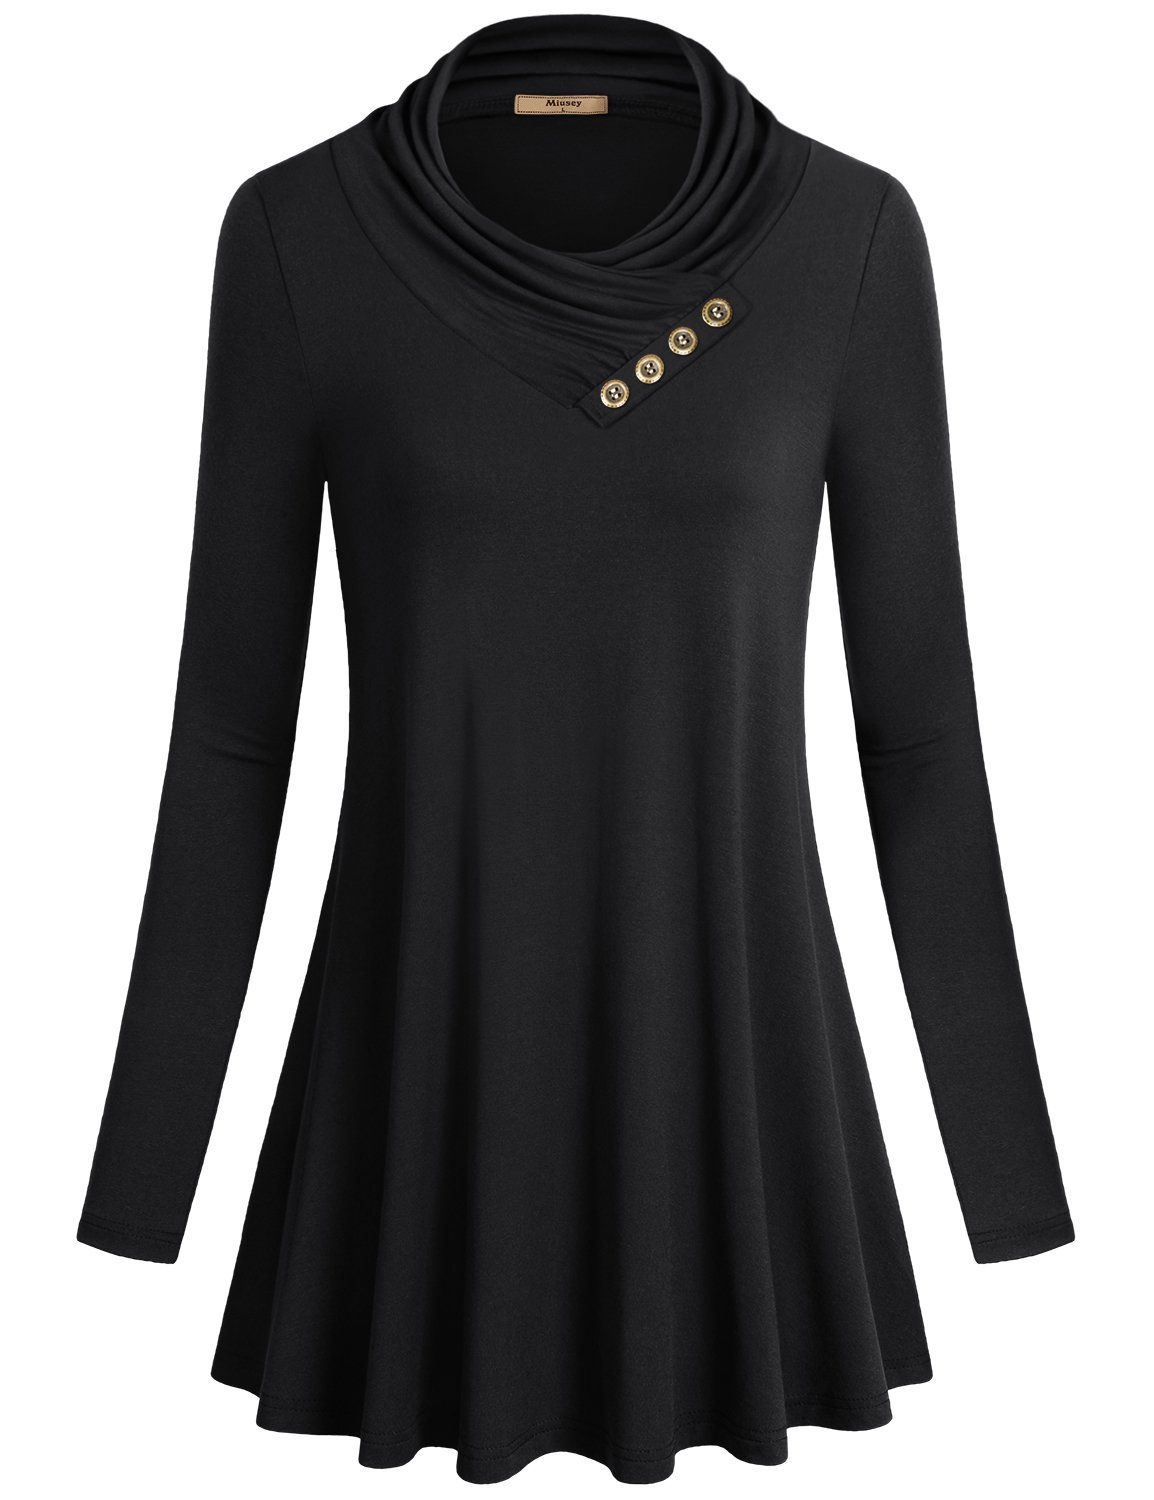 Miusey Tunics for Women, Long Sleeve Cowl Neck Shirt to Wear with Leggings Loose Fit Casual Flowy Top Black X-Large